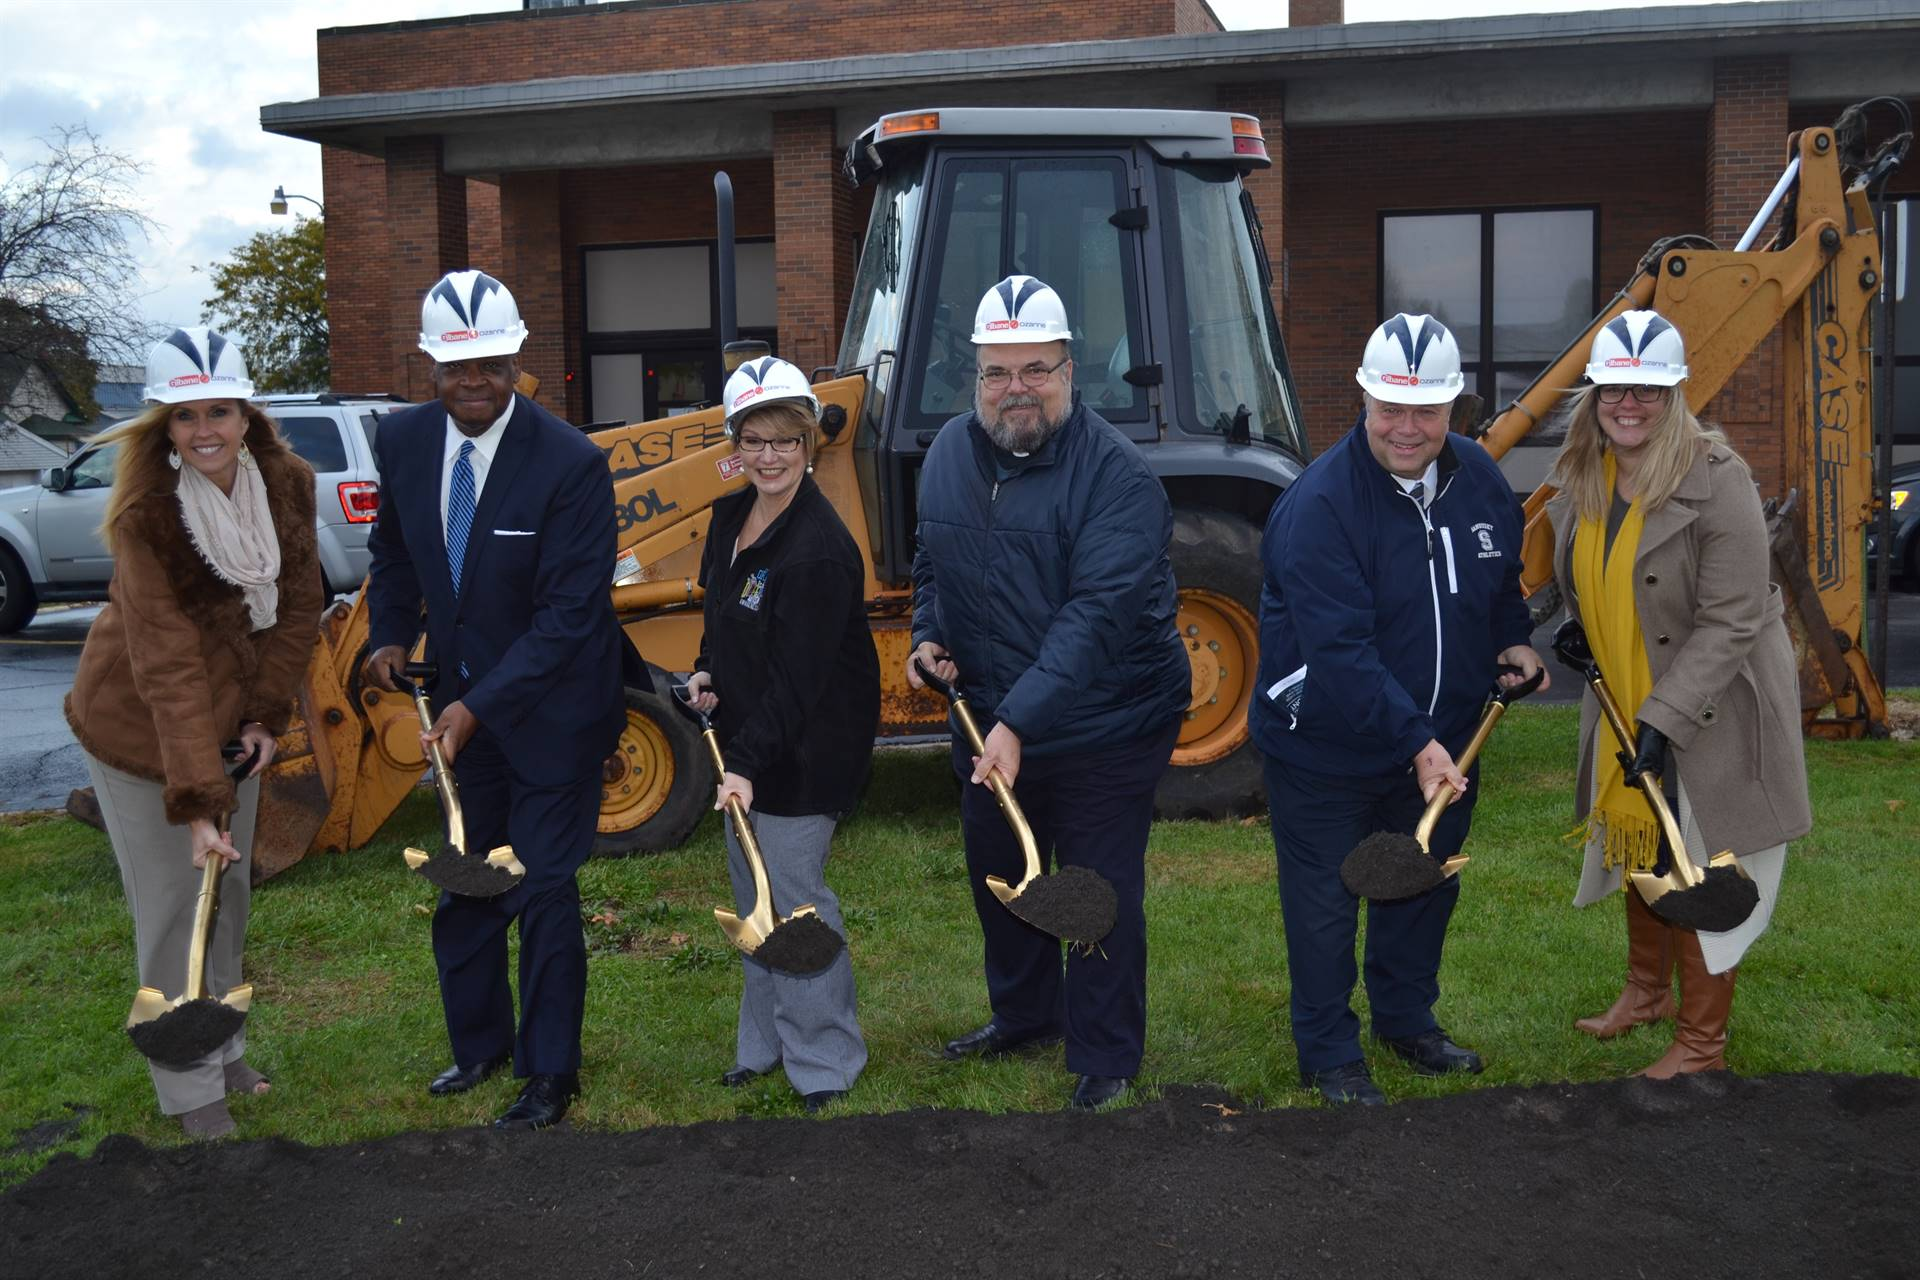 Ontario Primary Groundbreaking Ceremony